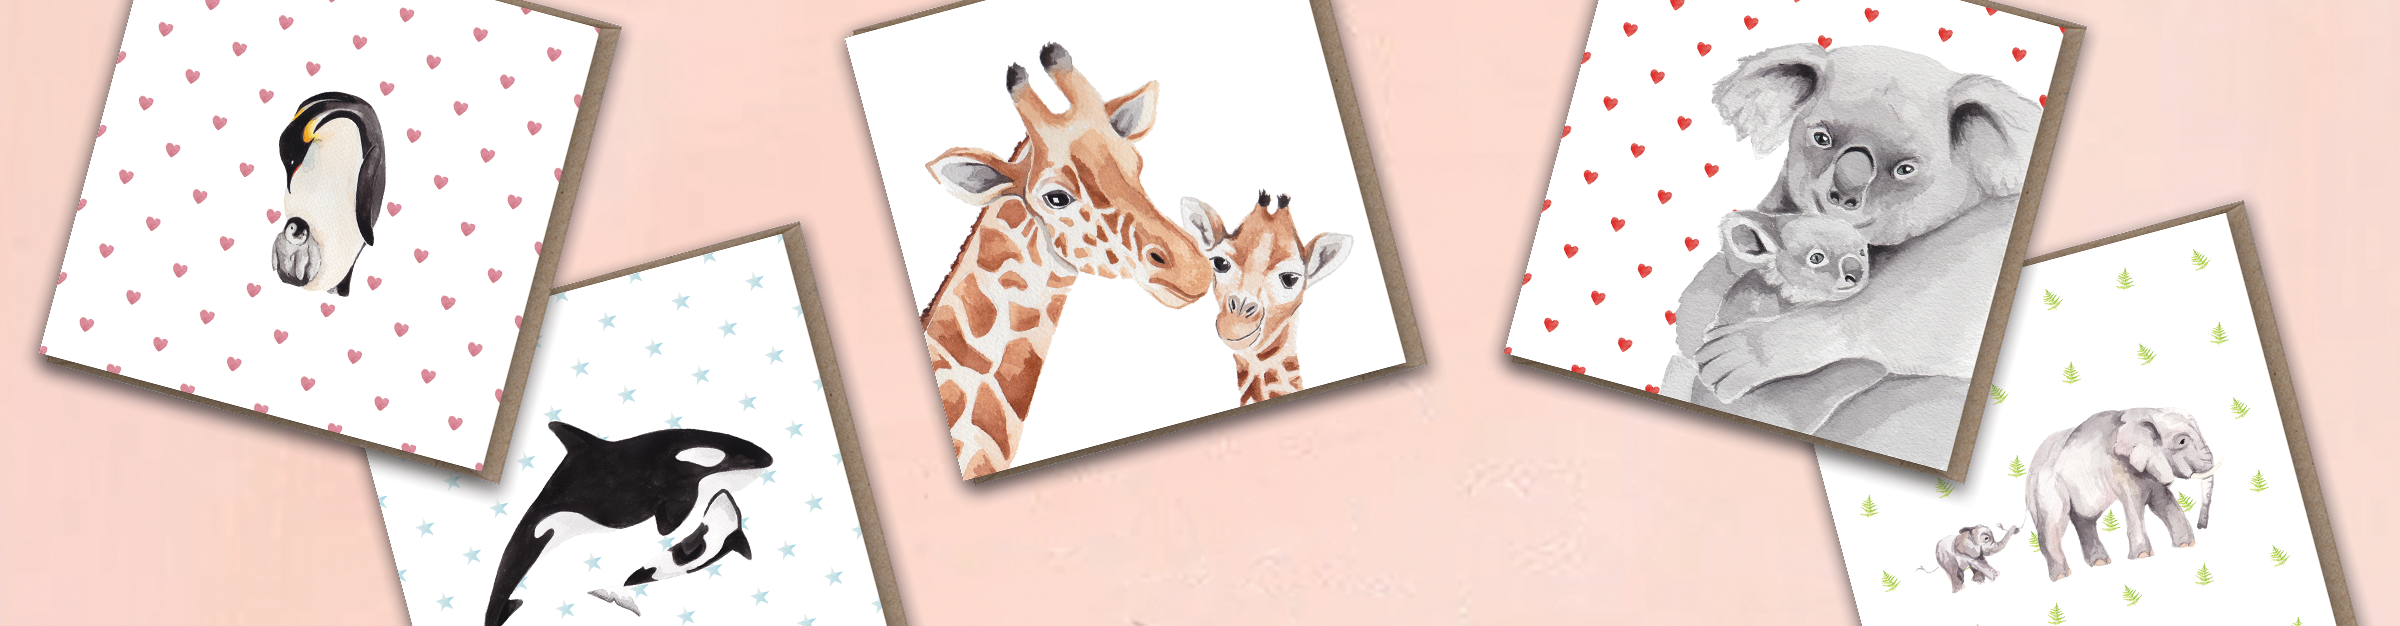 Collection of Mother's Day greeting cards by lil wabbit